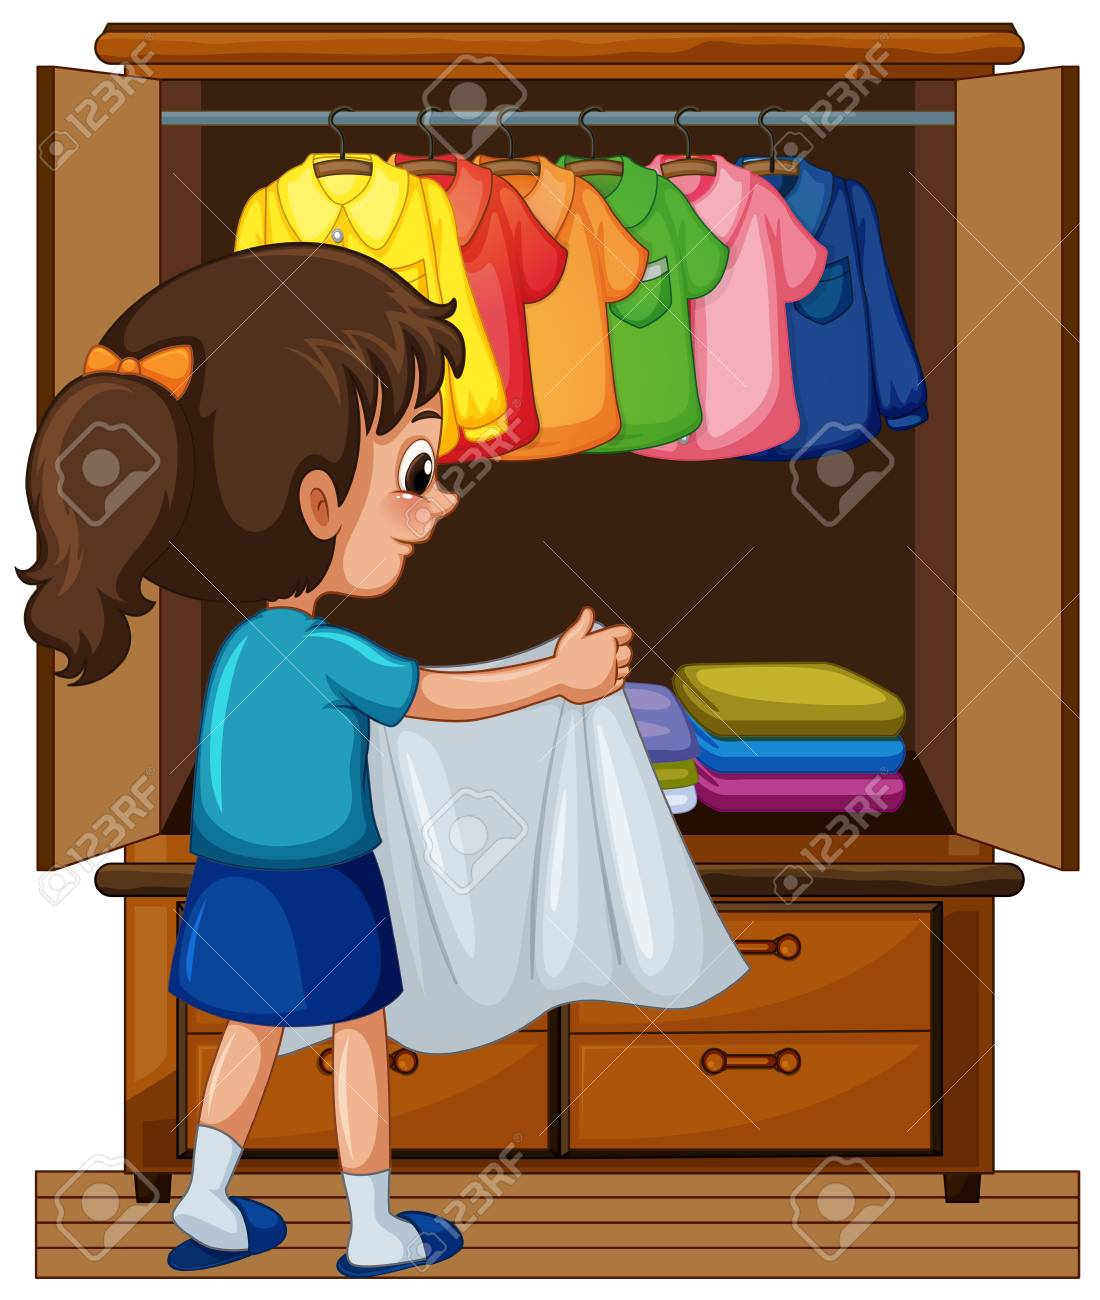 Girl putting away clothes in closet » Clipart Station.